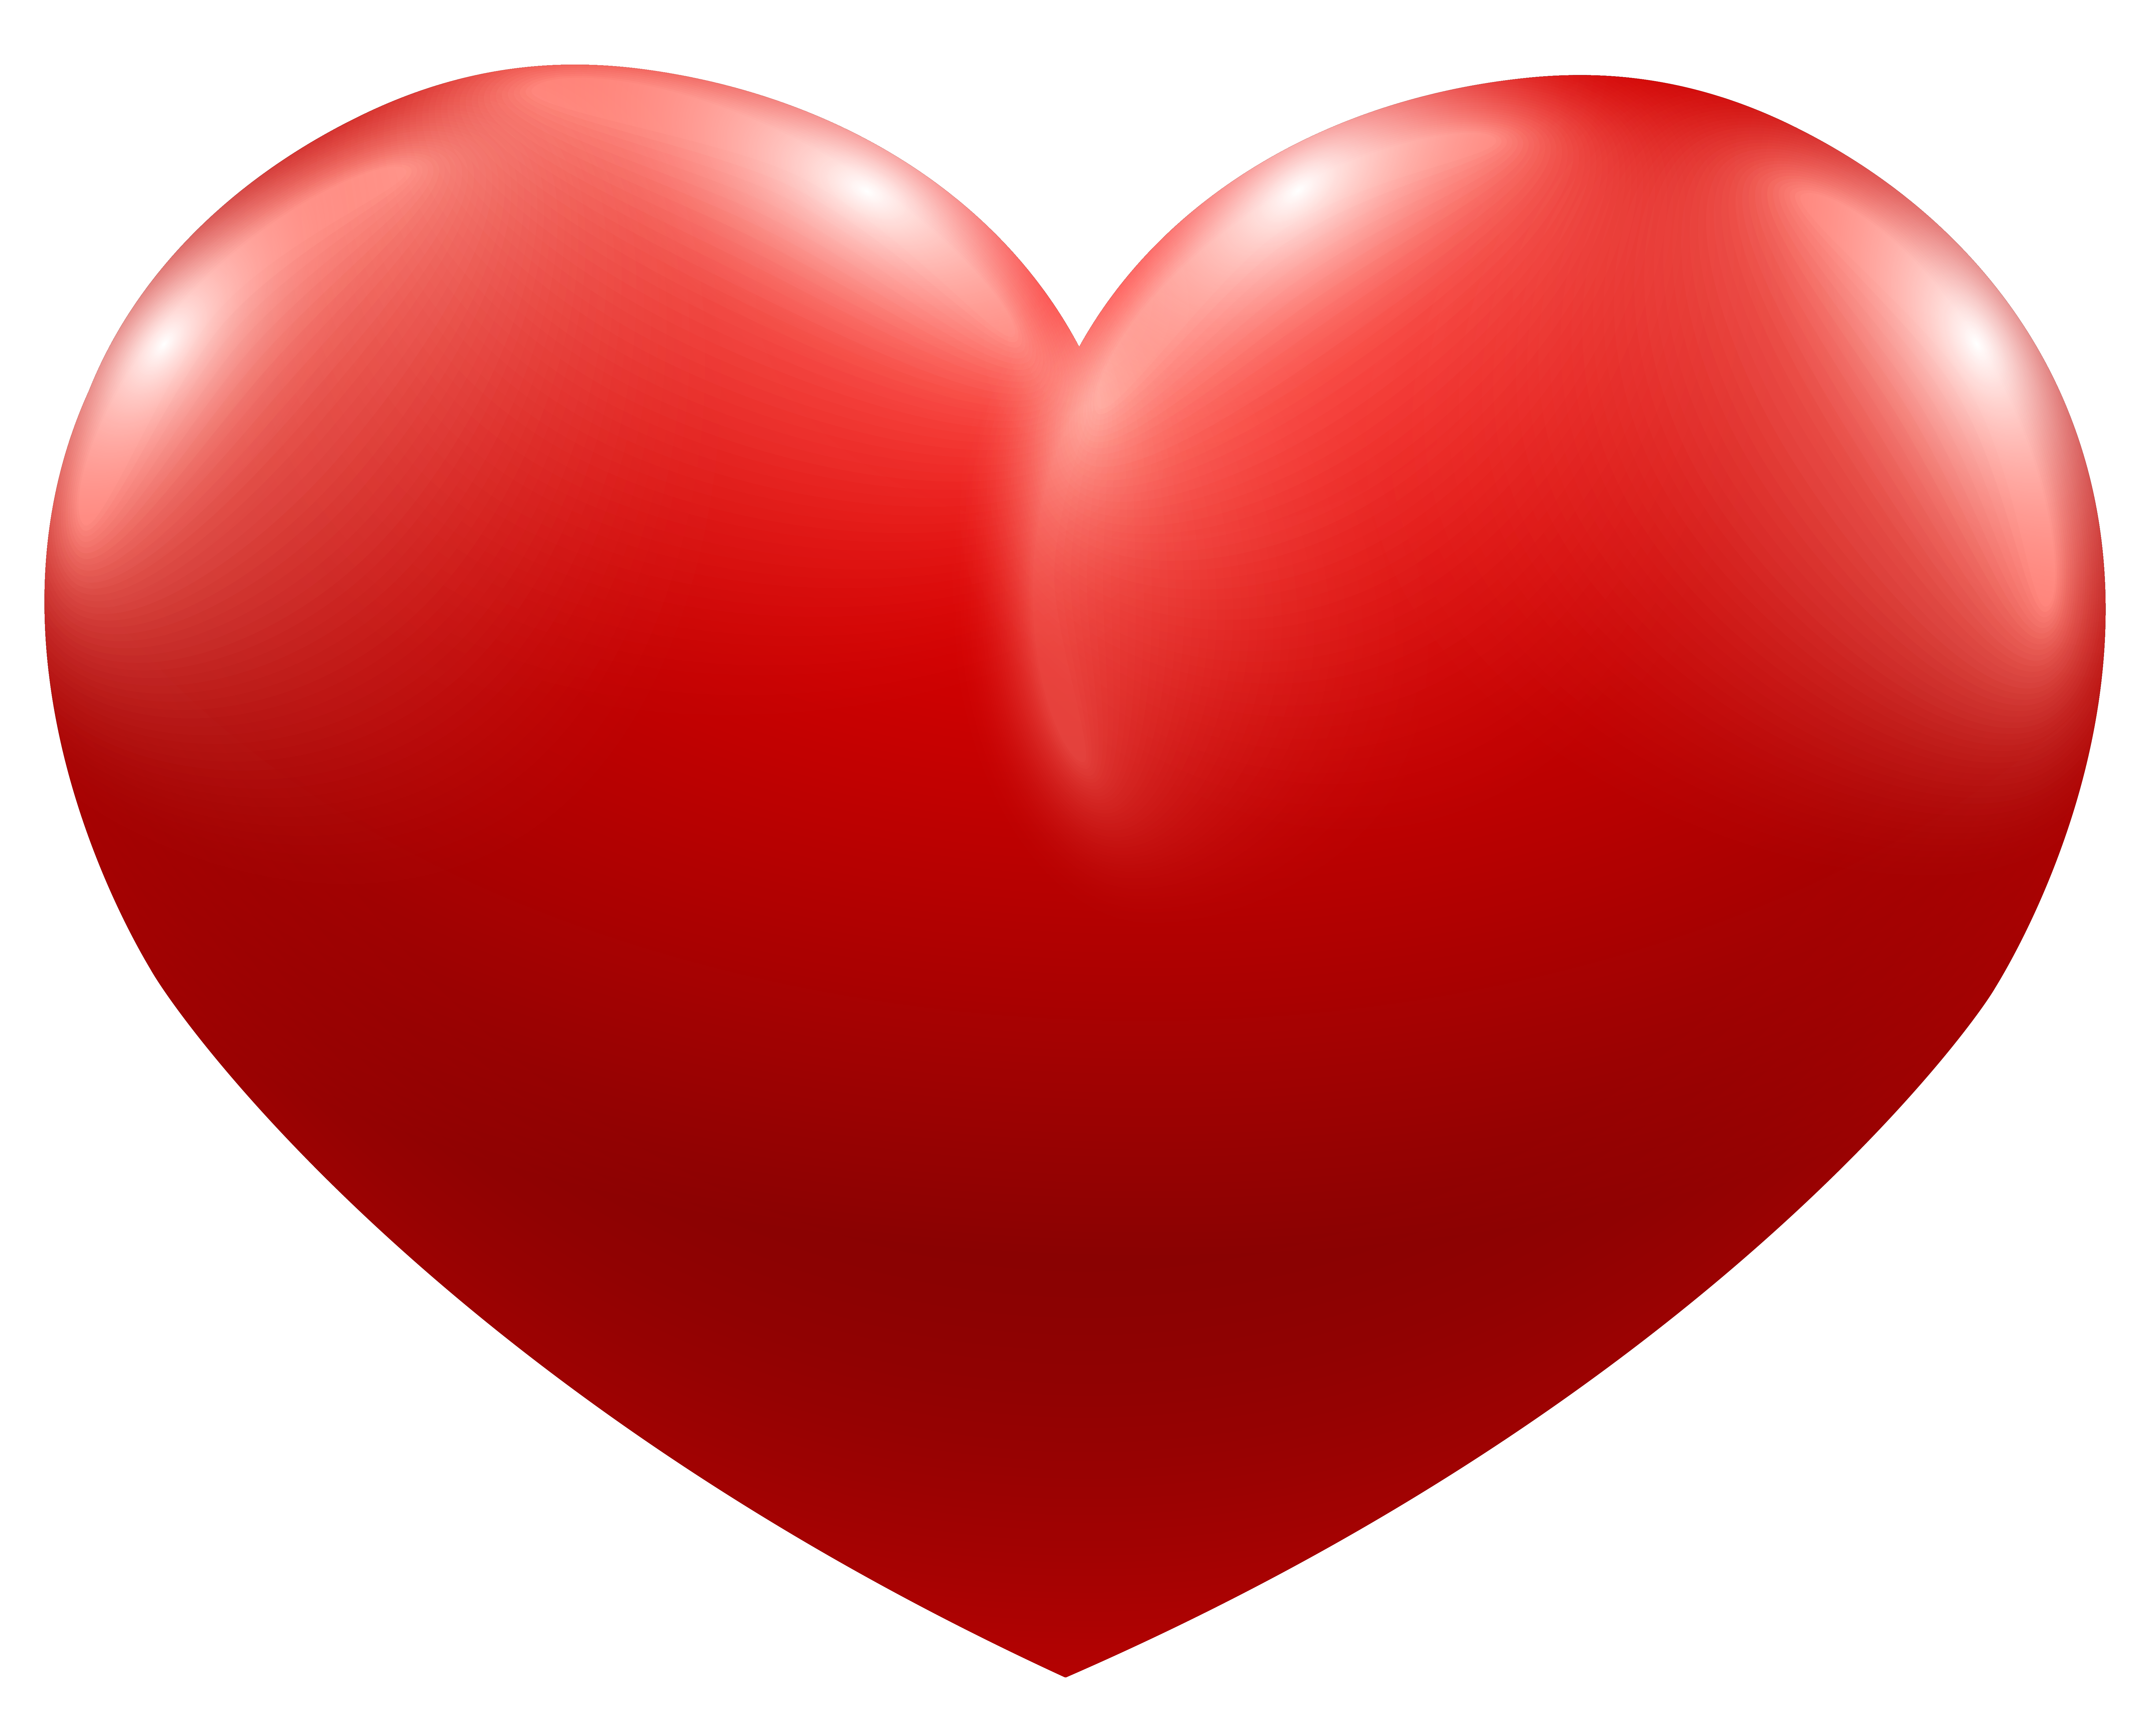 hearts png transparent